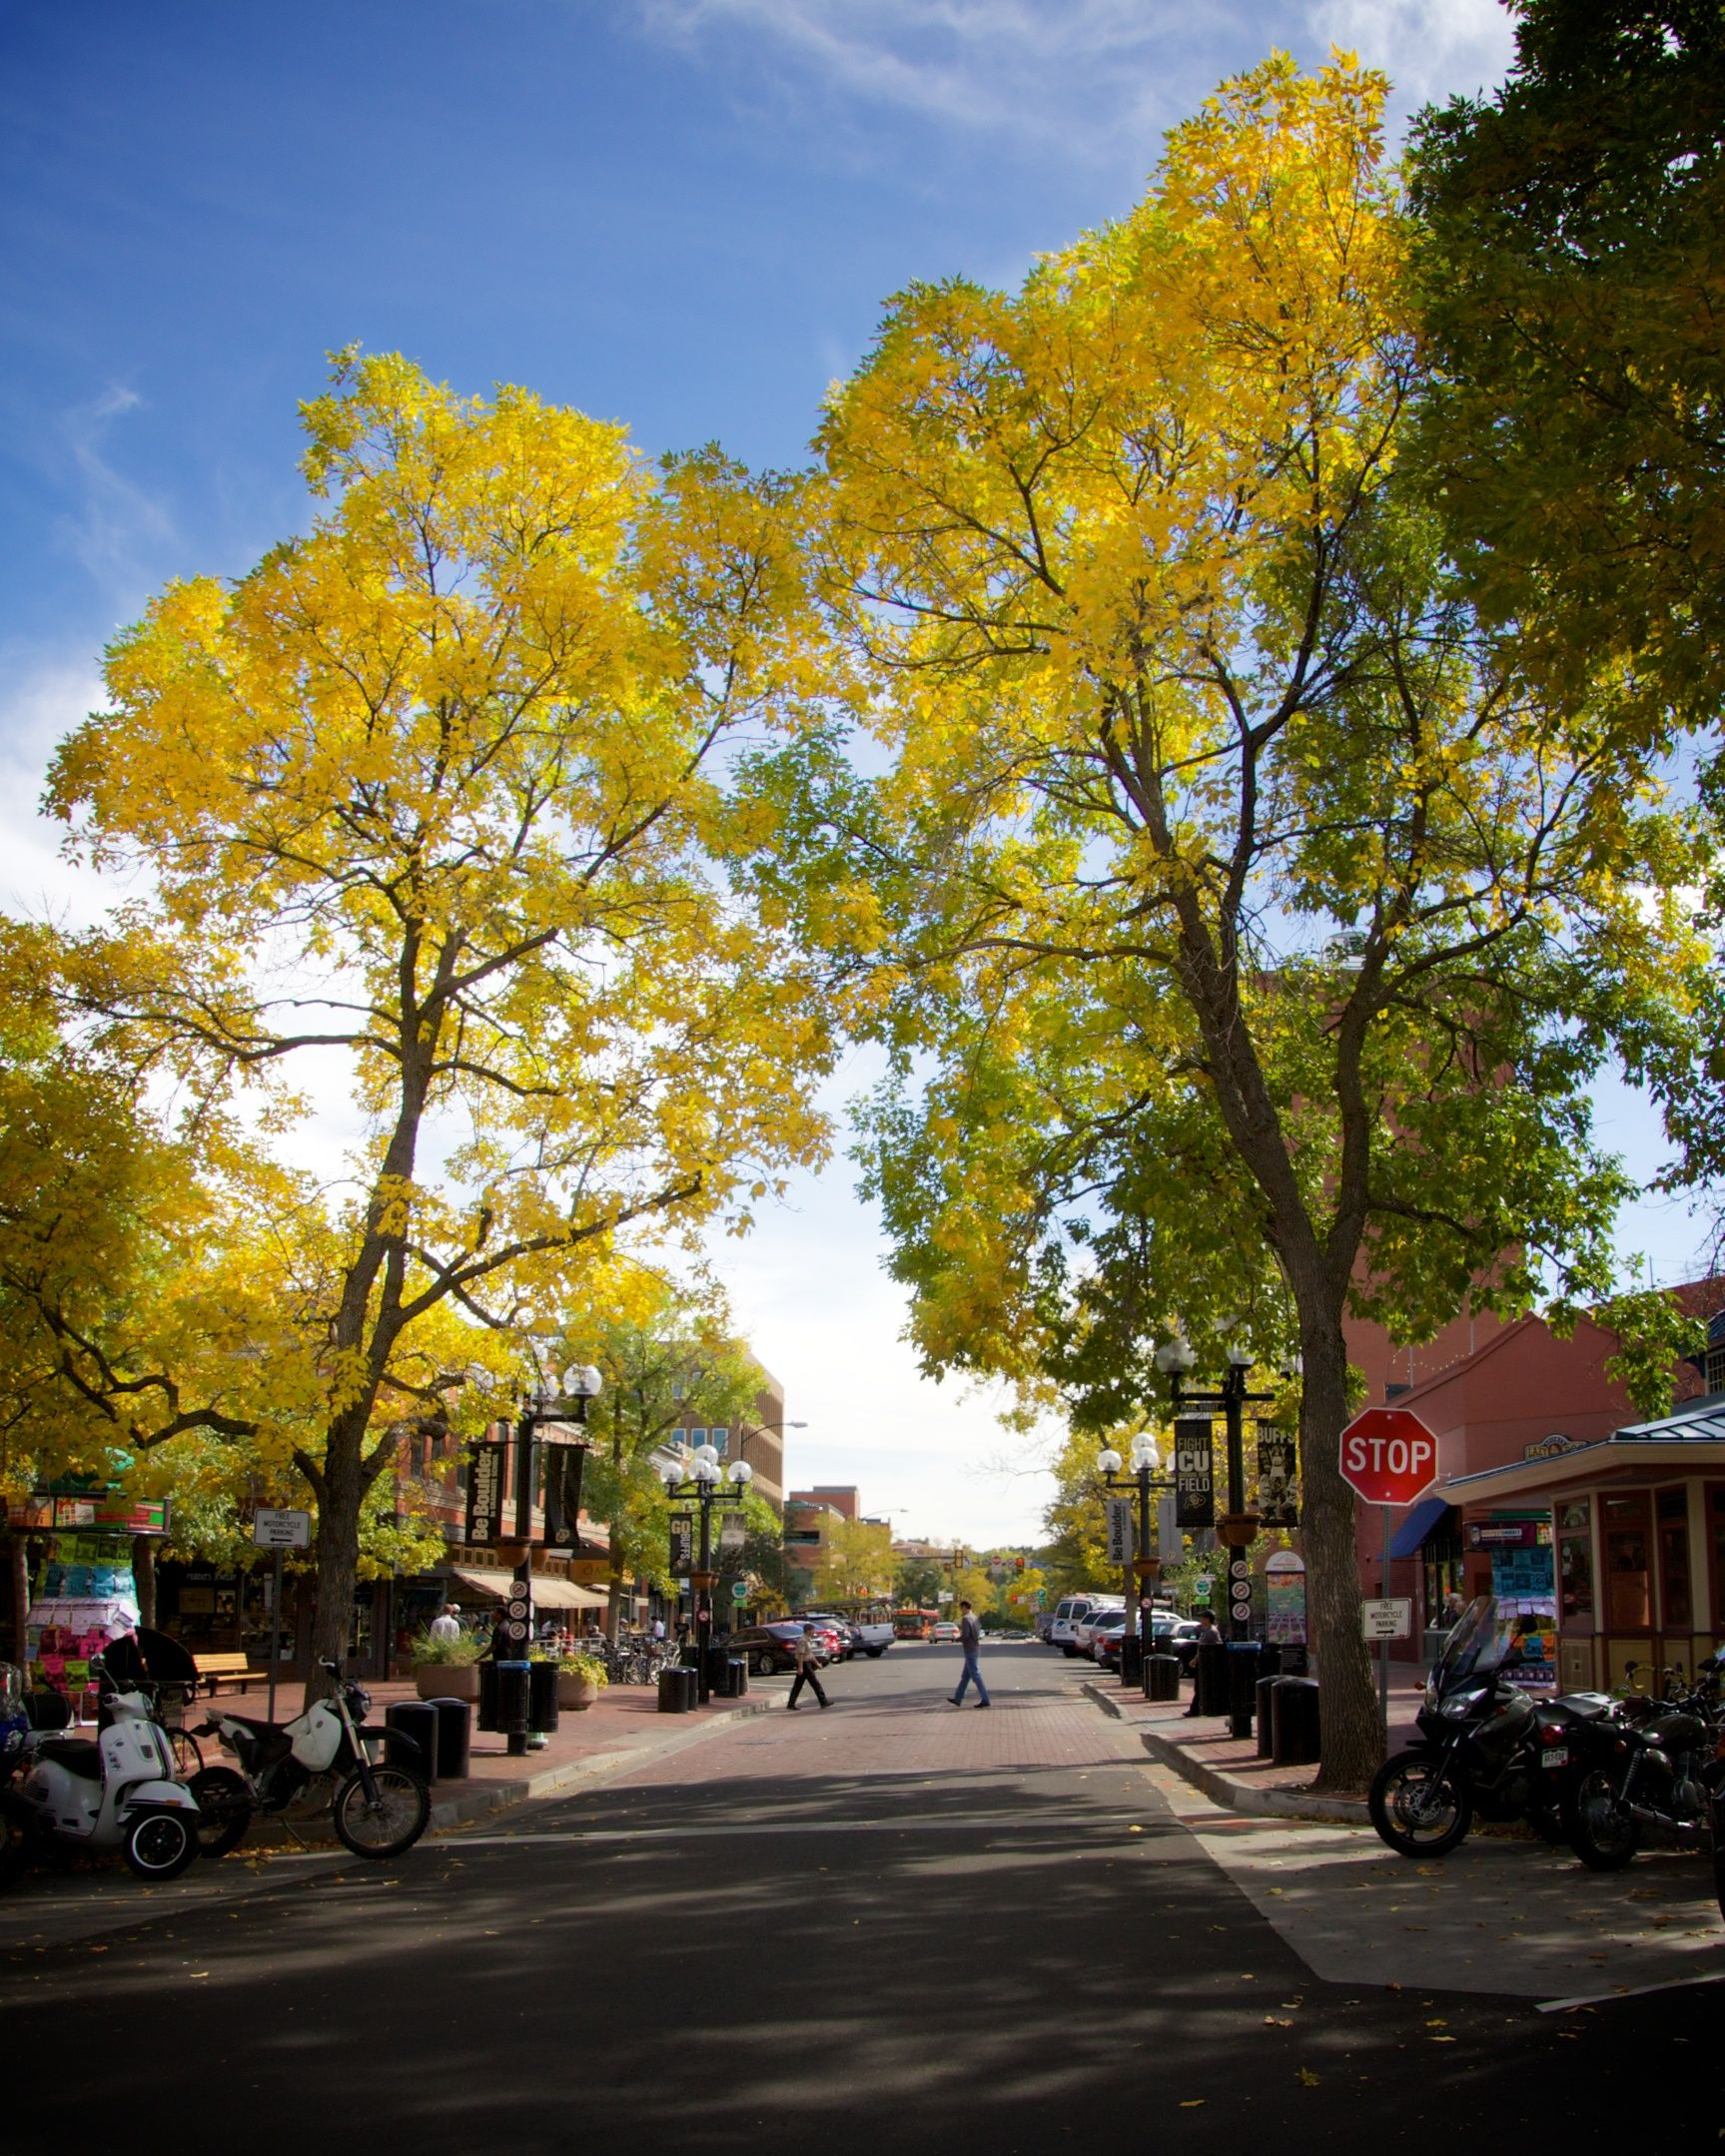 What a spectacular afternoon in Downtown Boulder!  Hope everyone can get out to enjoy the beautiful fall colors before the cold front moves in tomorrow!  #downtownboulder #boulder #fall #autumn